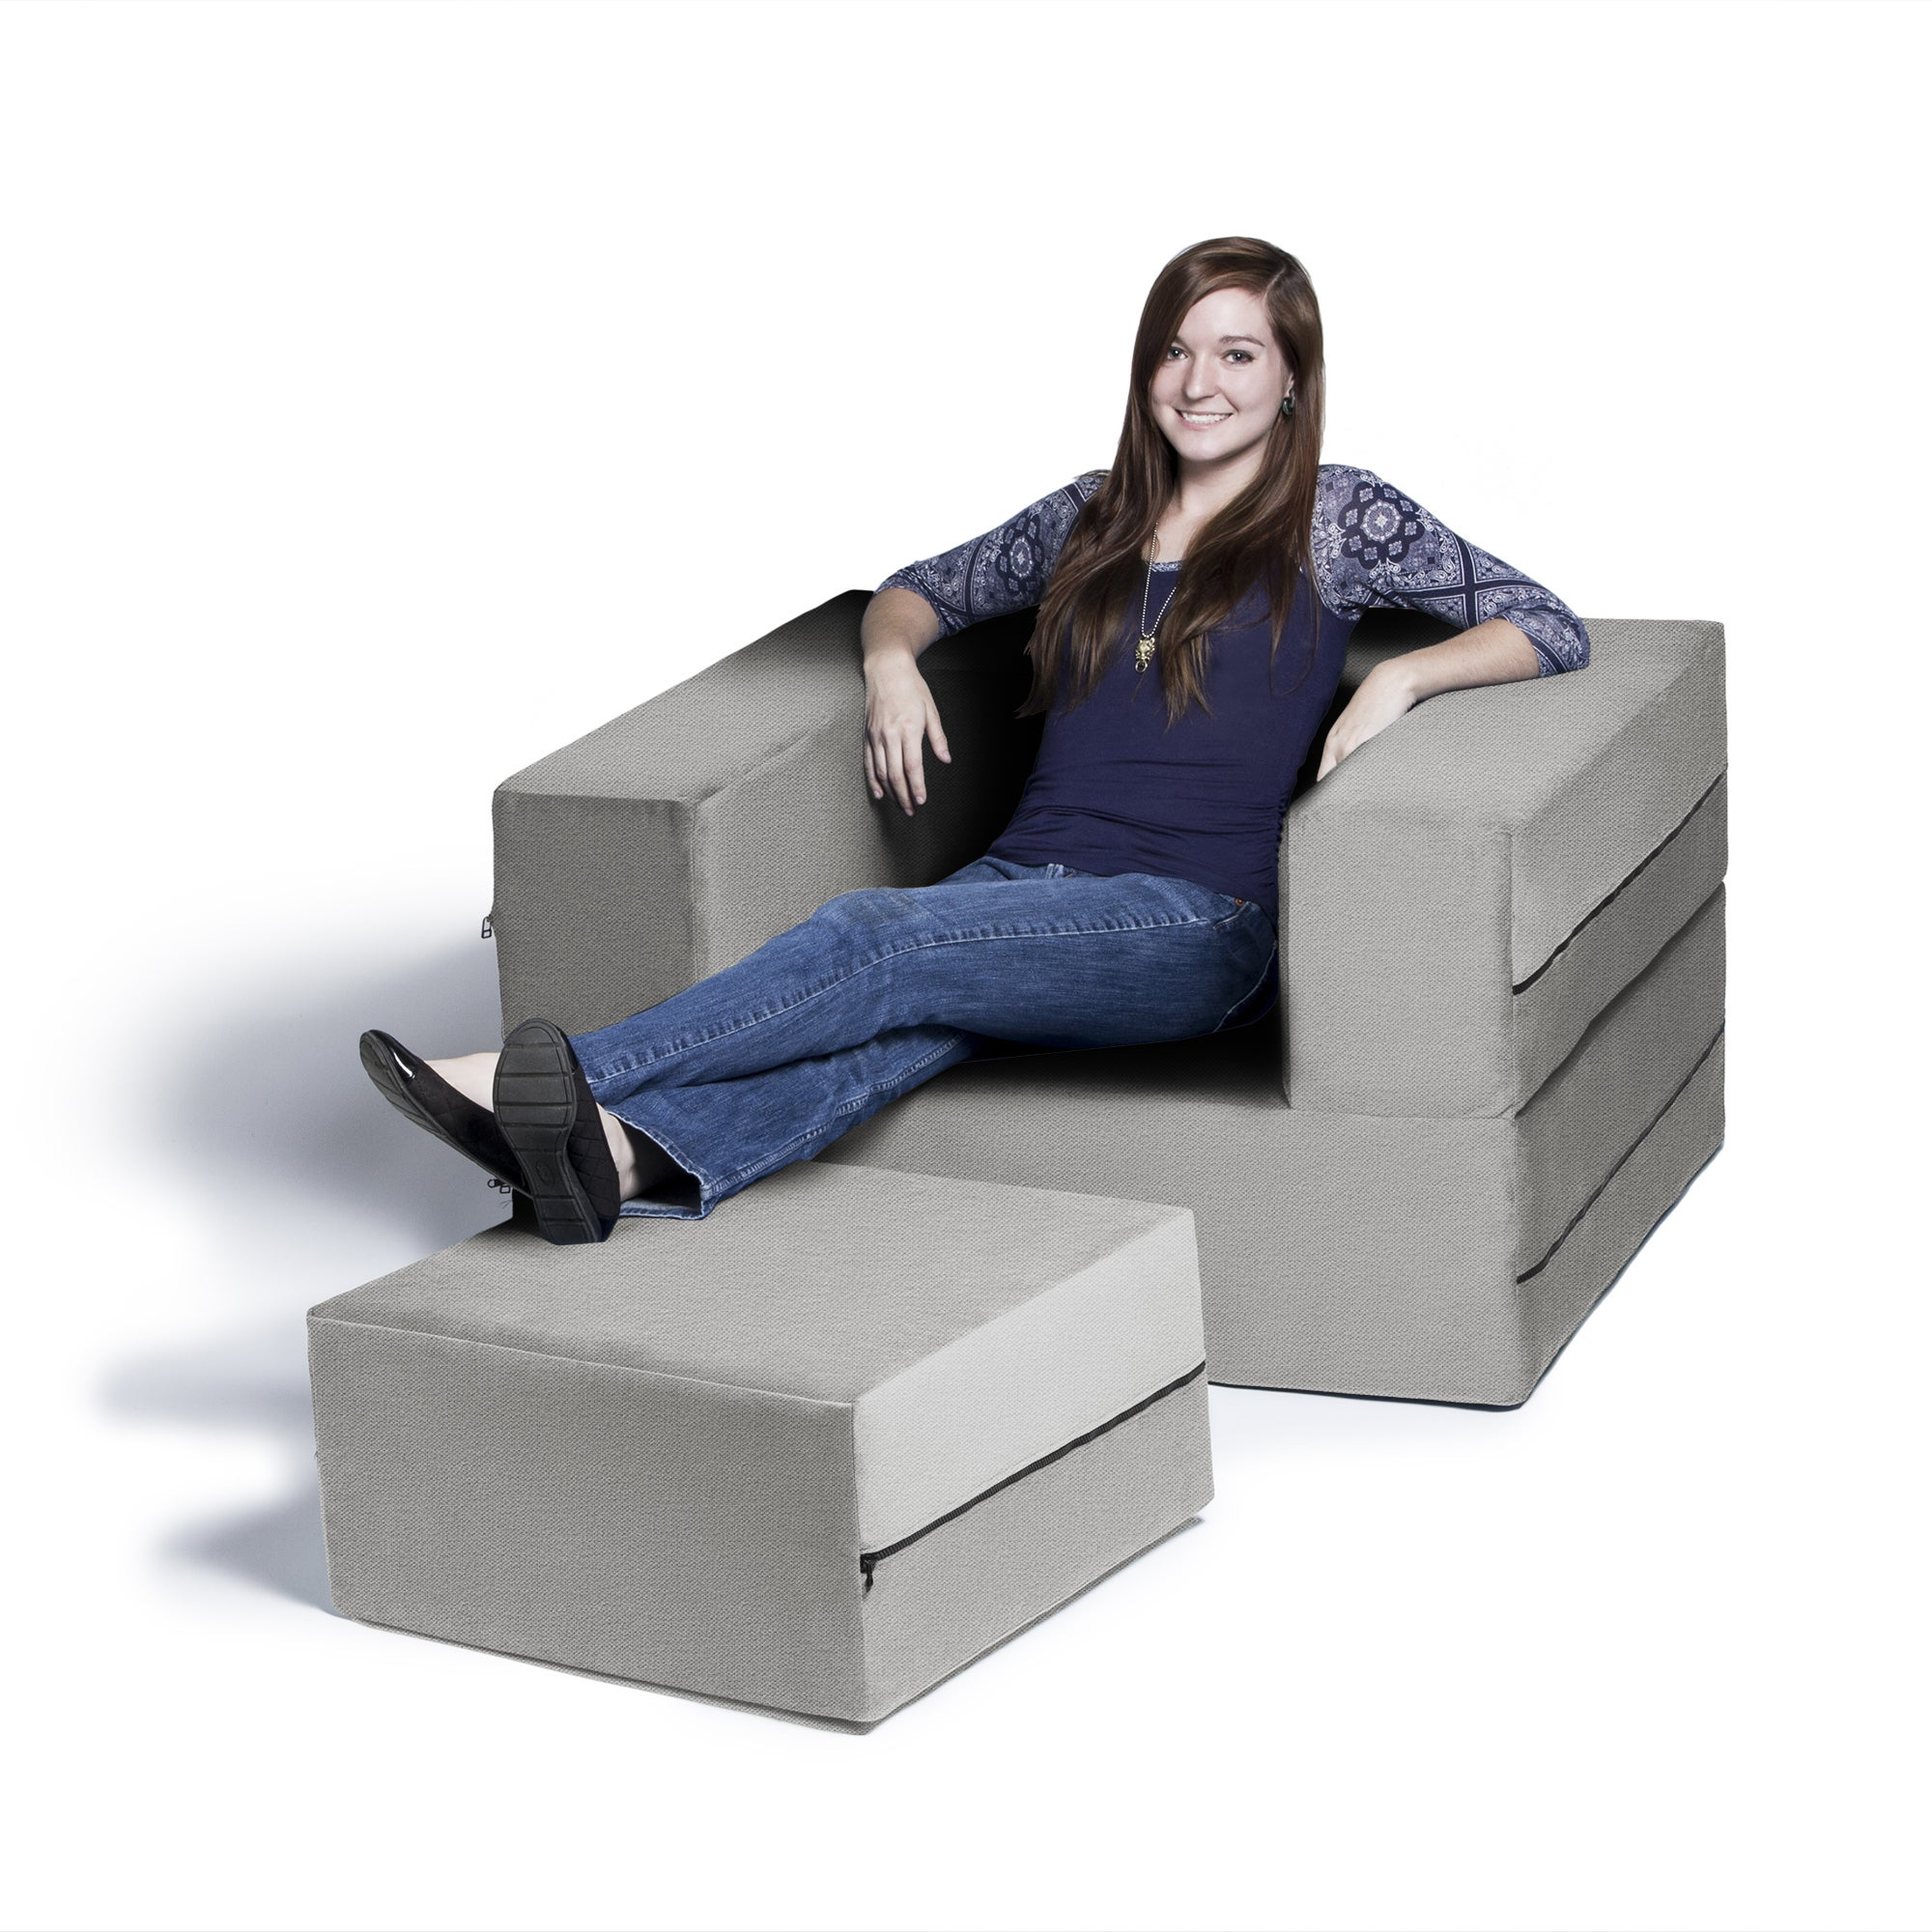 Shop Jaxx Zipline Convertible Sleeper Chair And Ottoman/ Twin Size Bed    Free Shipping Today   Overstock.com   9375980